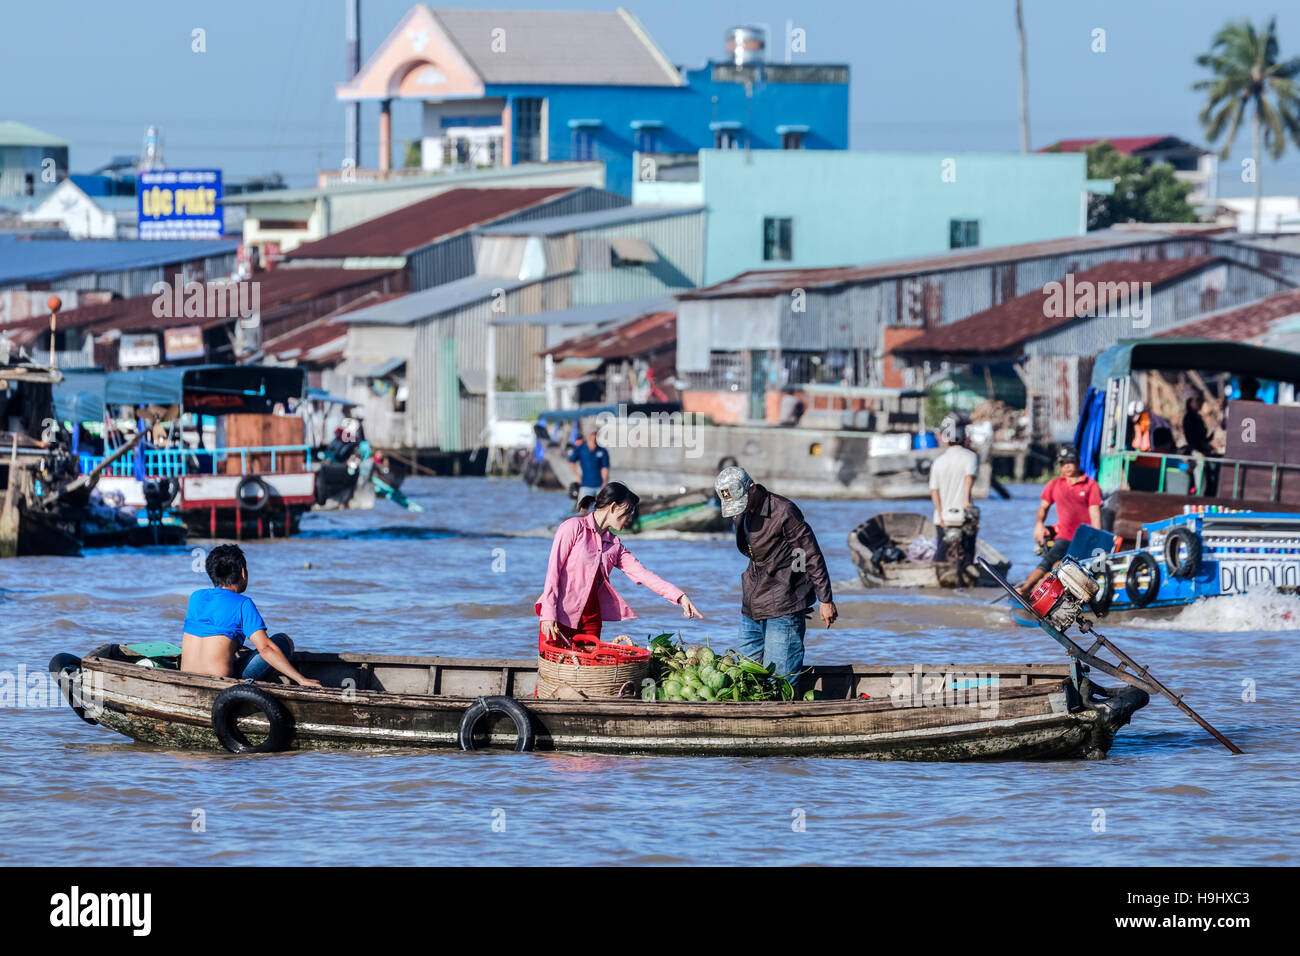 floating market in Can Tho, Mekong Delta, Vietnam, Asia - Stock Image